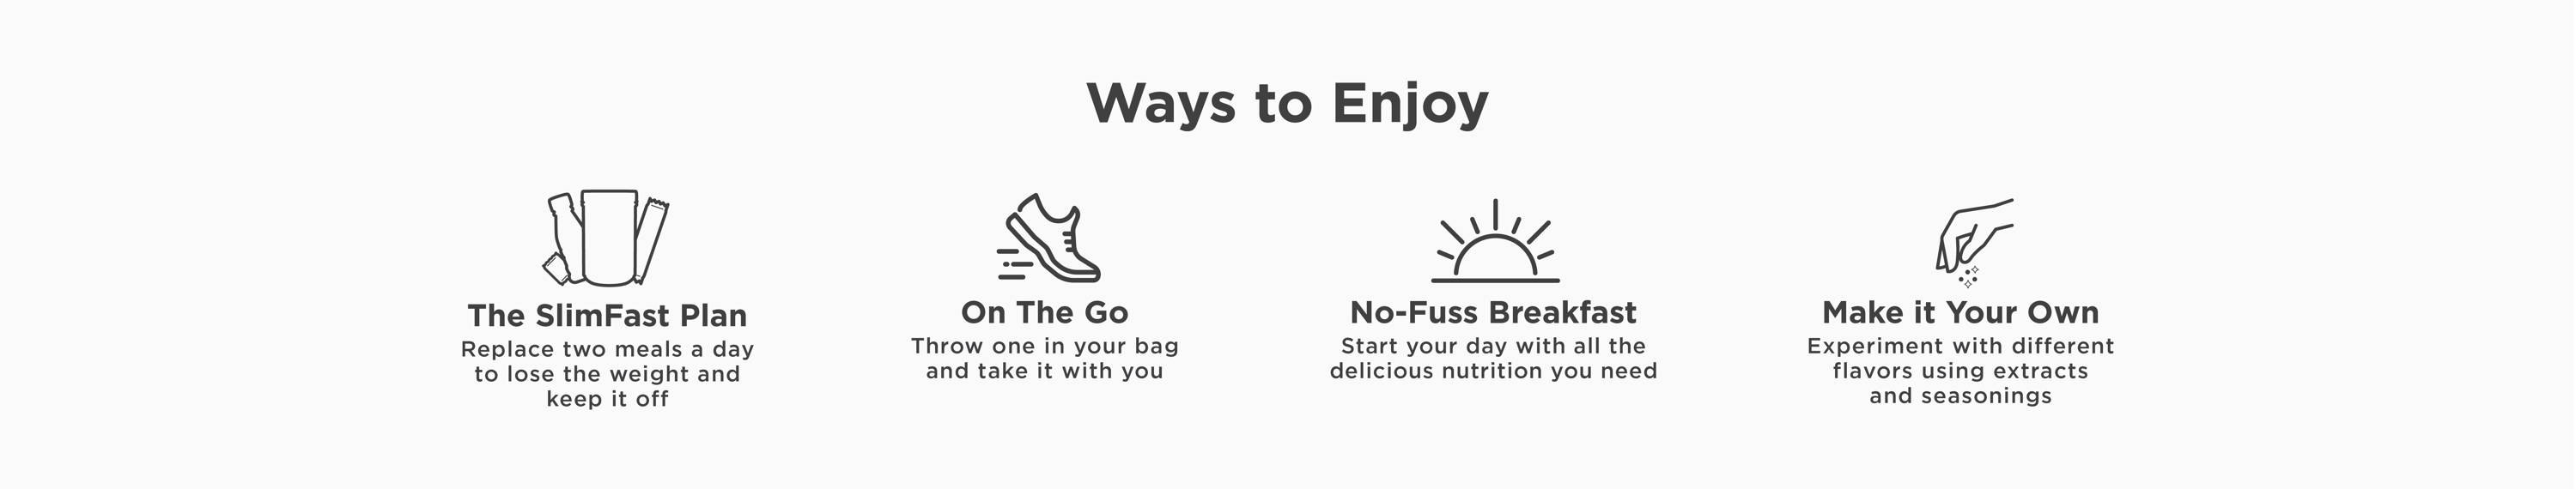 Ways to enjoy Original Shakes: Use them on the SlimFast plan, take them on the go, have a no-fuss breakfast, or make it your own